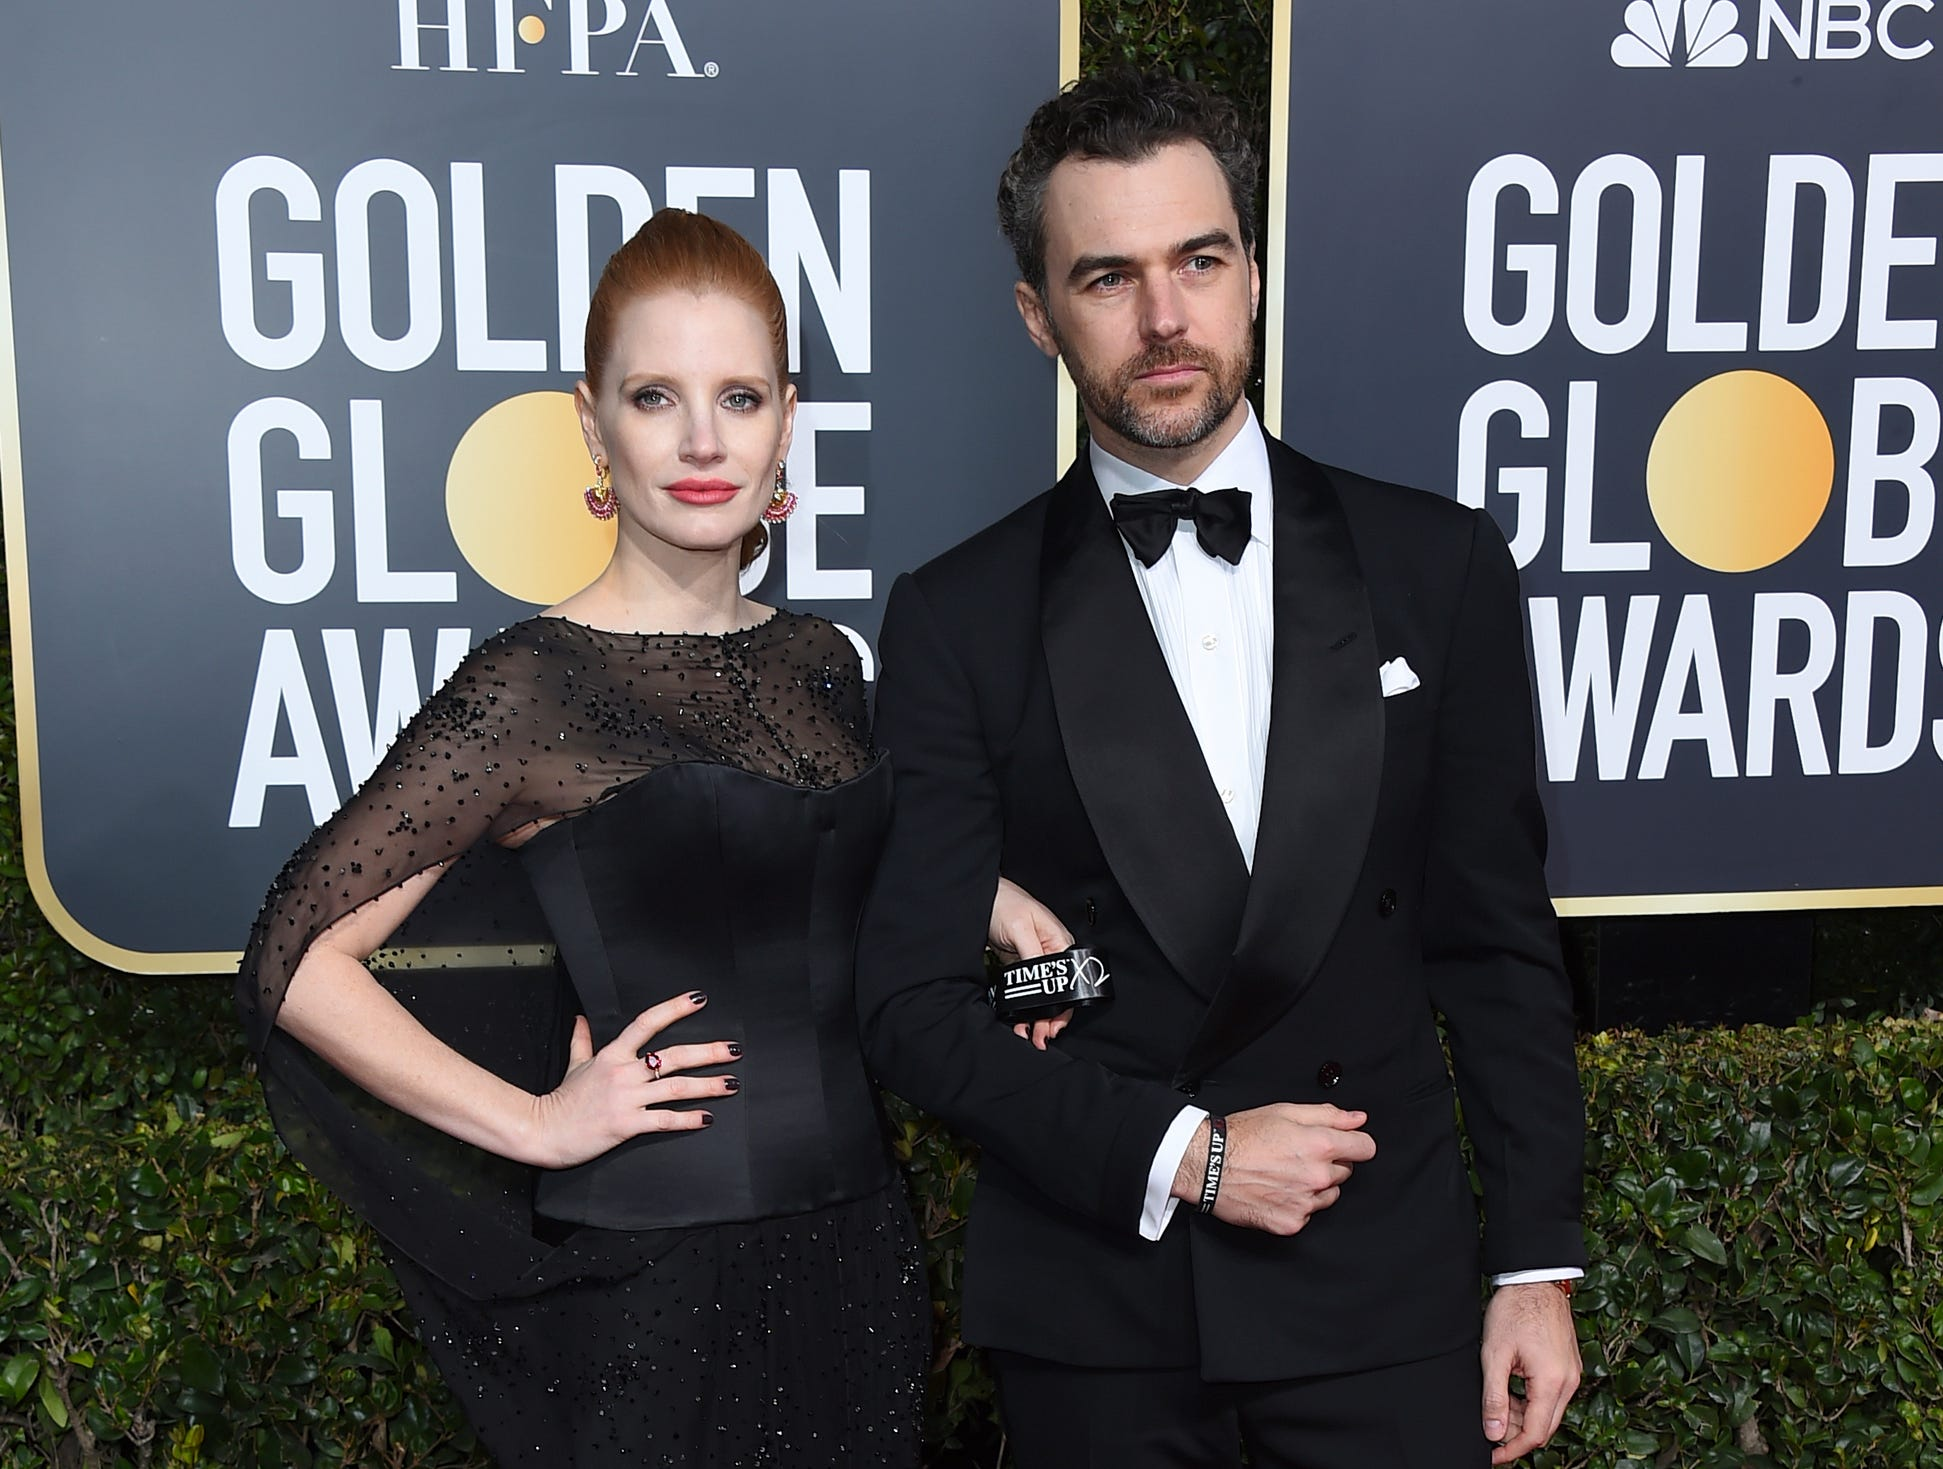 Jessica Chastain, left, and Gian Luca Passi de Preposulo arrive at the 76th annual Golden Globe Awards at the Beverly Hilton Hotel.